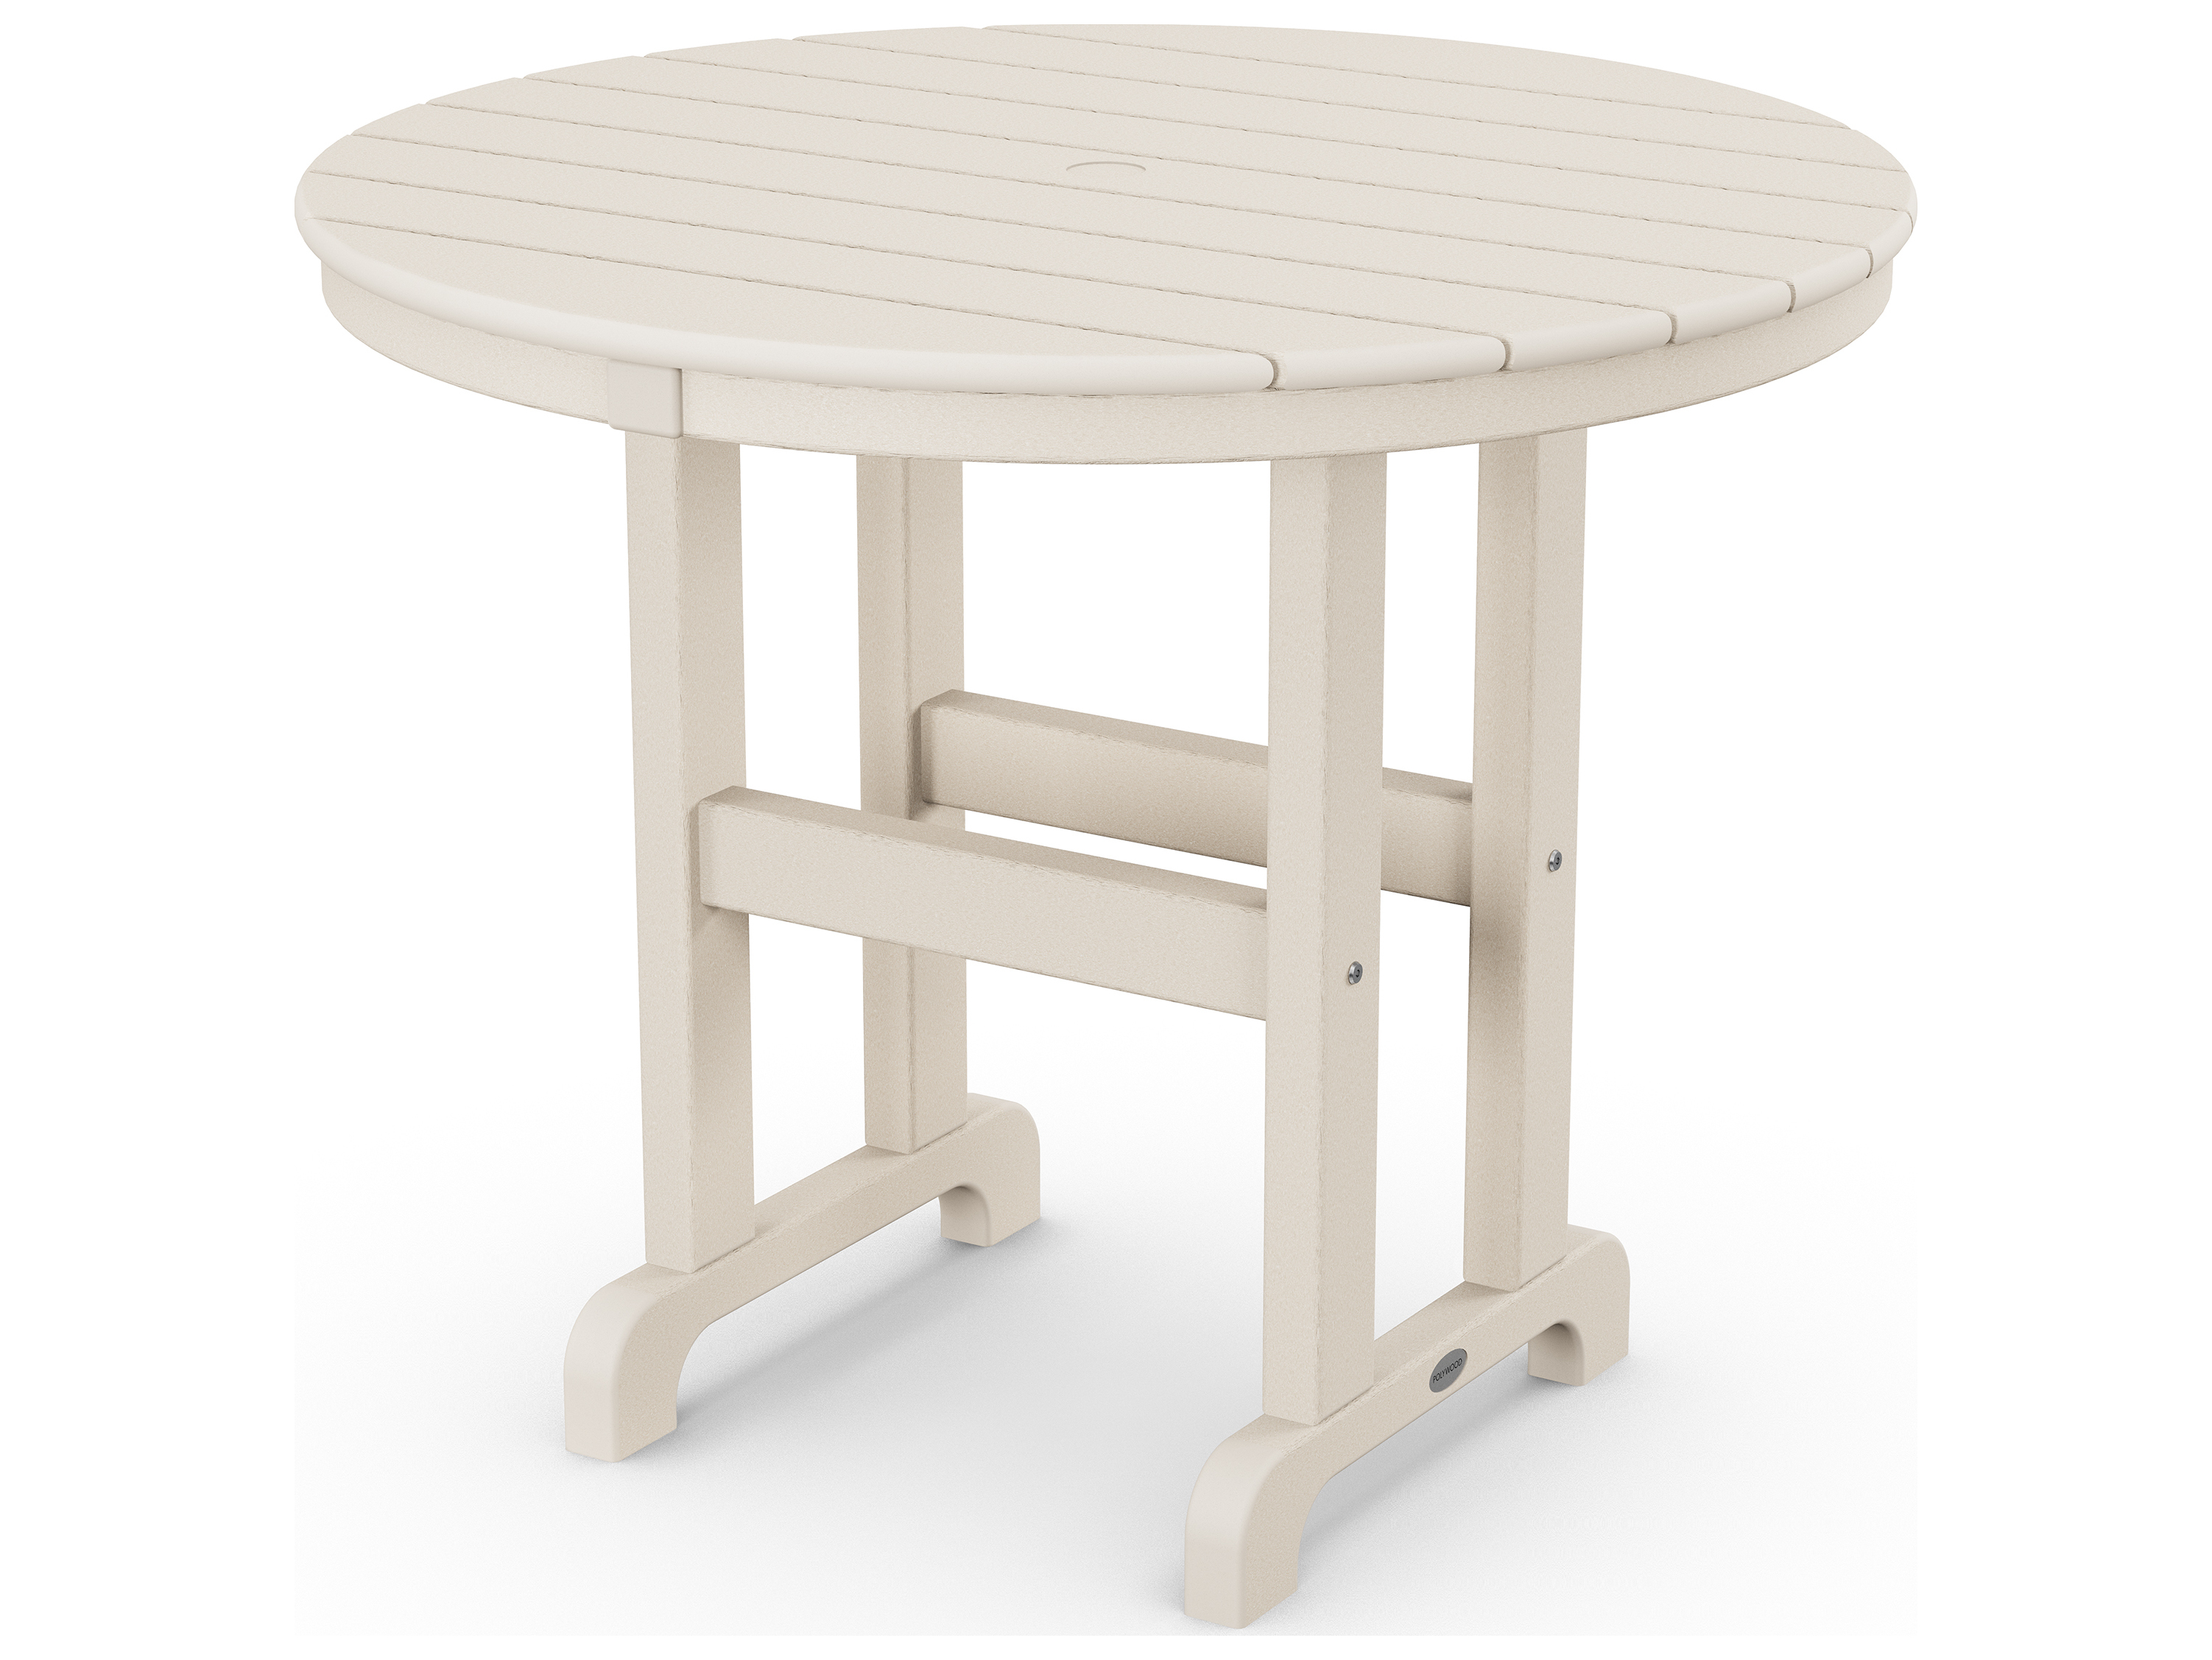 Polywood 174 La Casa Cafe Recycled Plastic 36 Round Dining